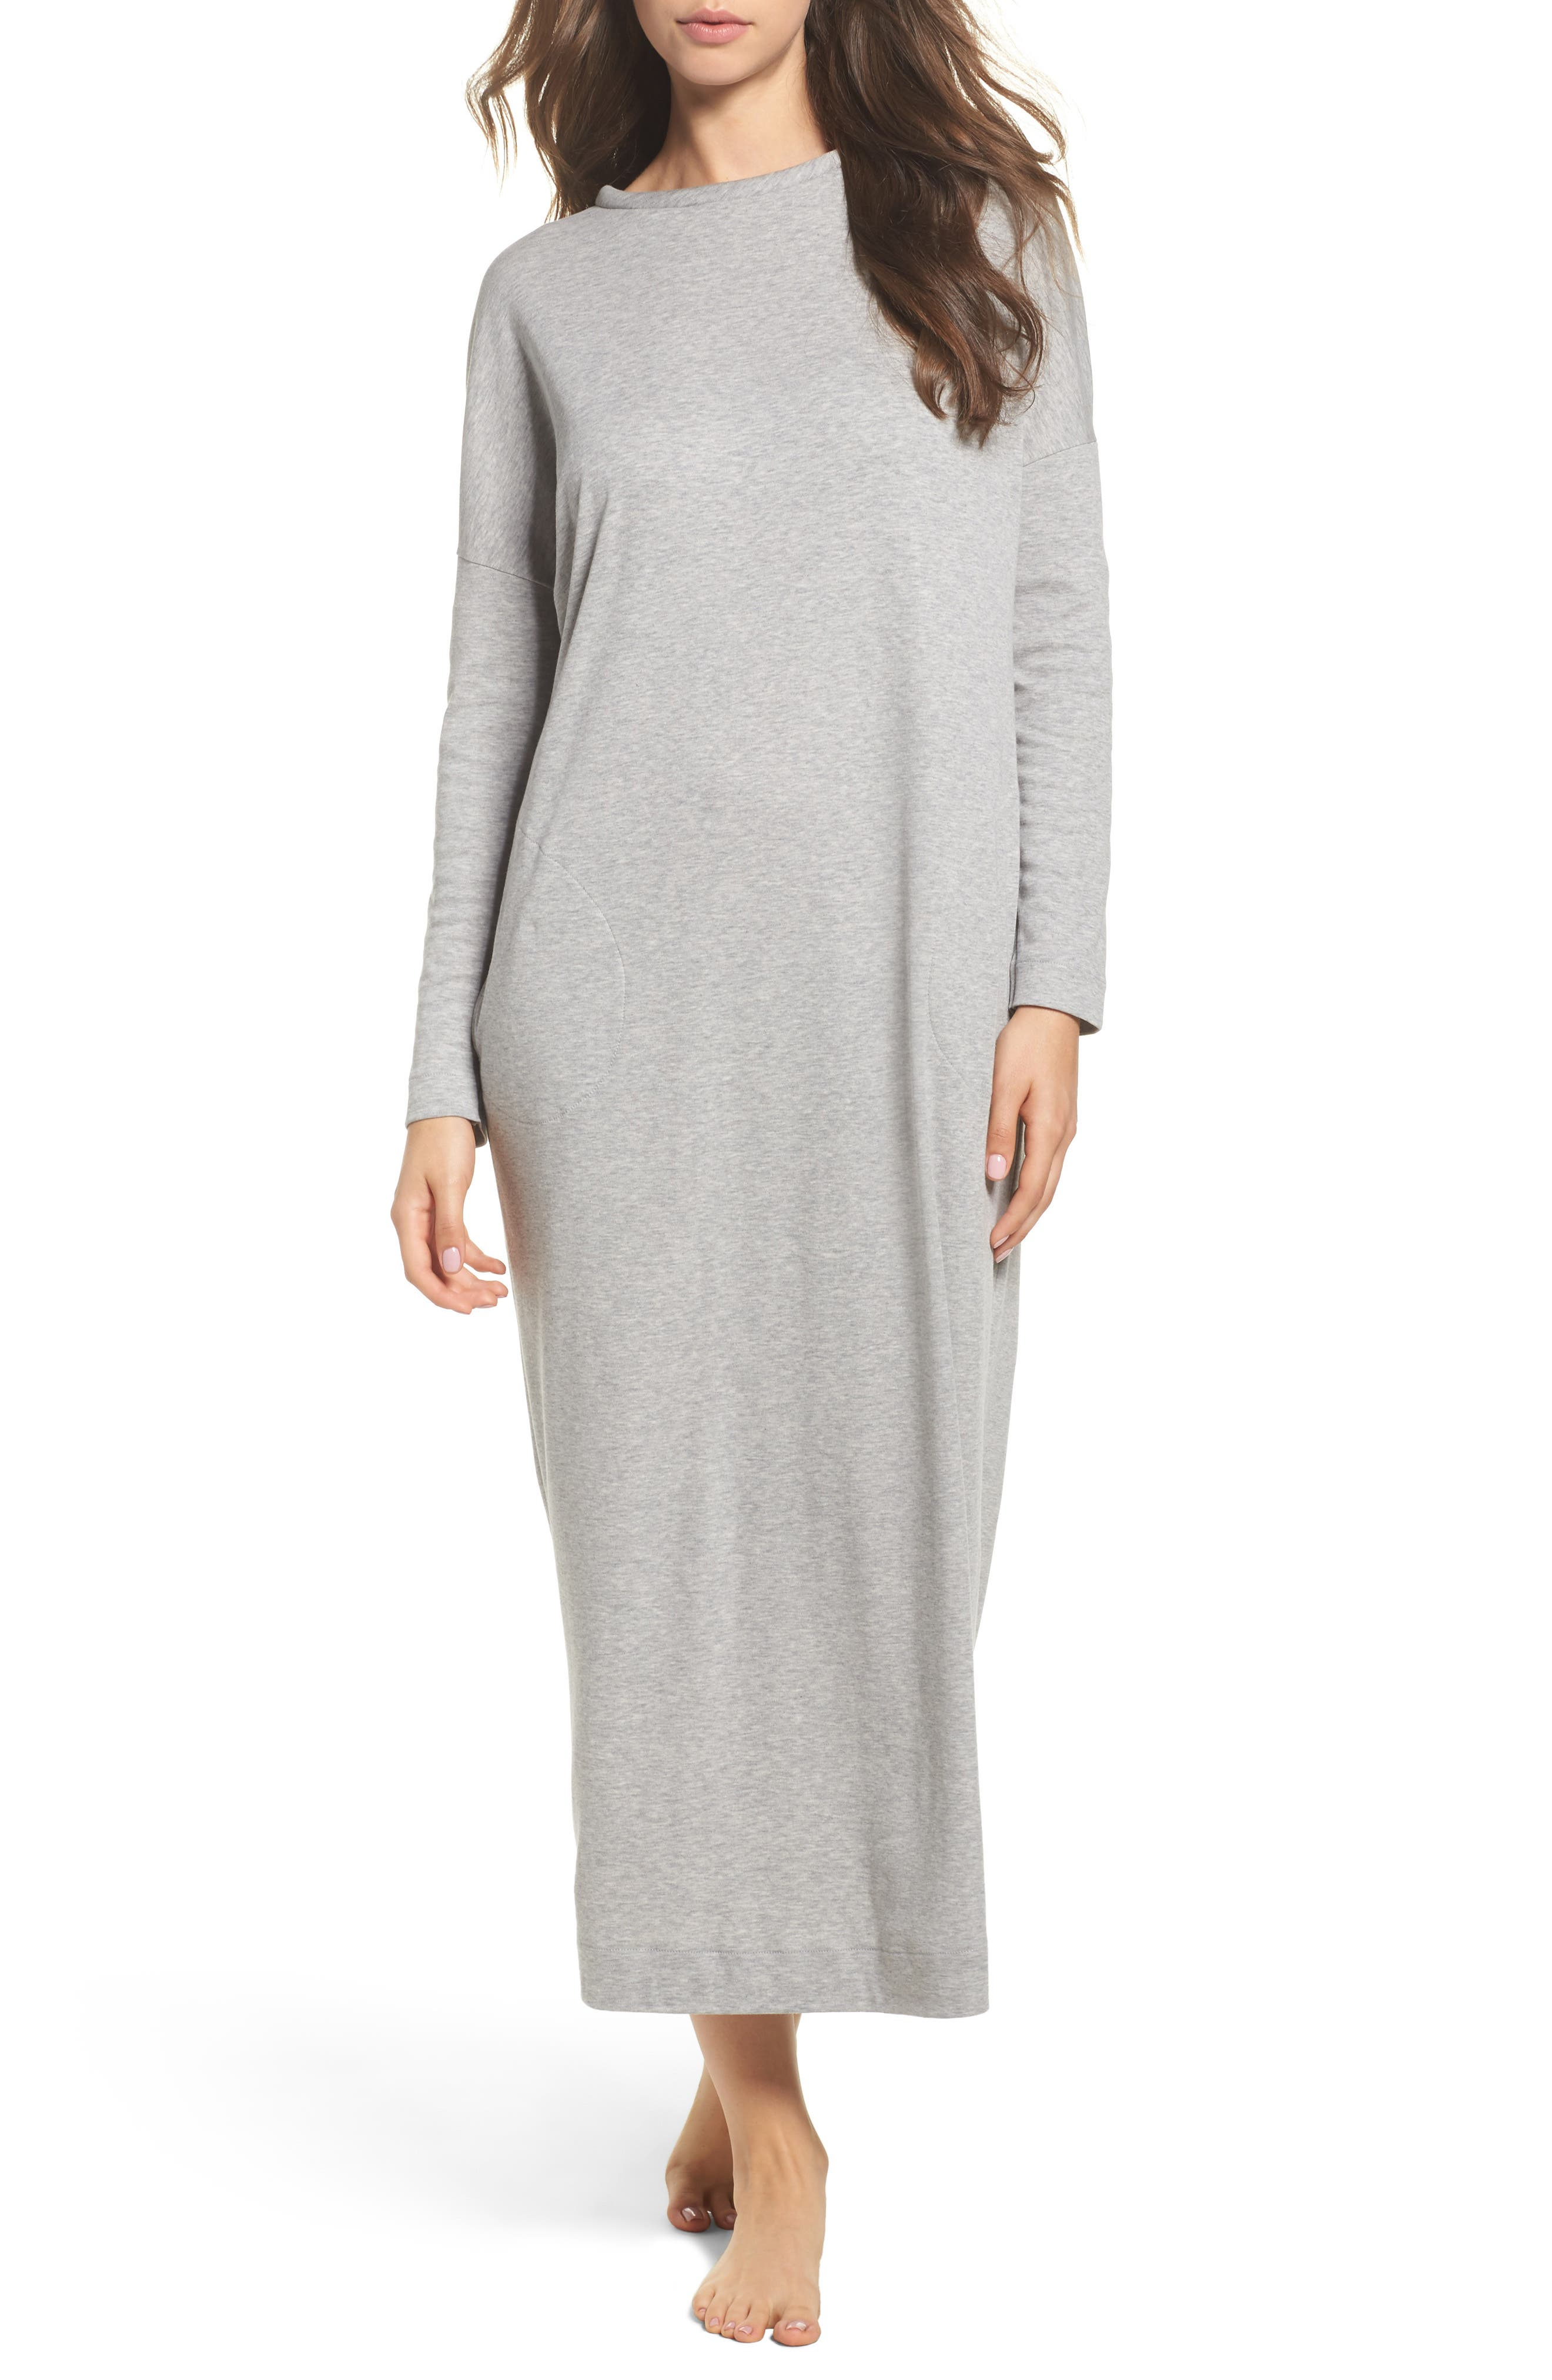 Alternate Image 1 Selected - Hanro Enie Cotton Nightgown